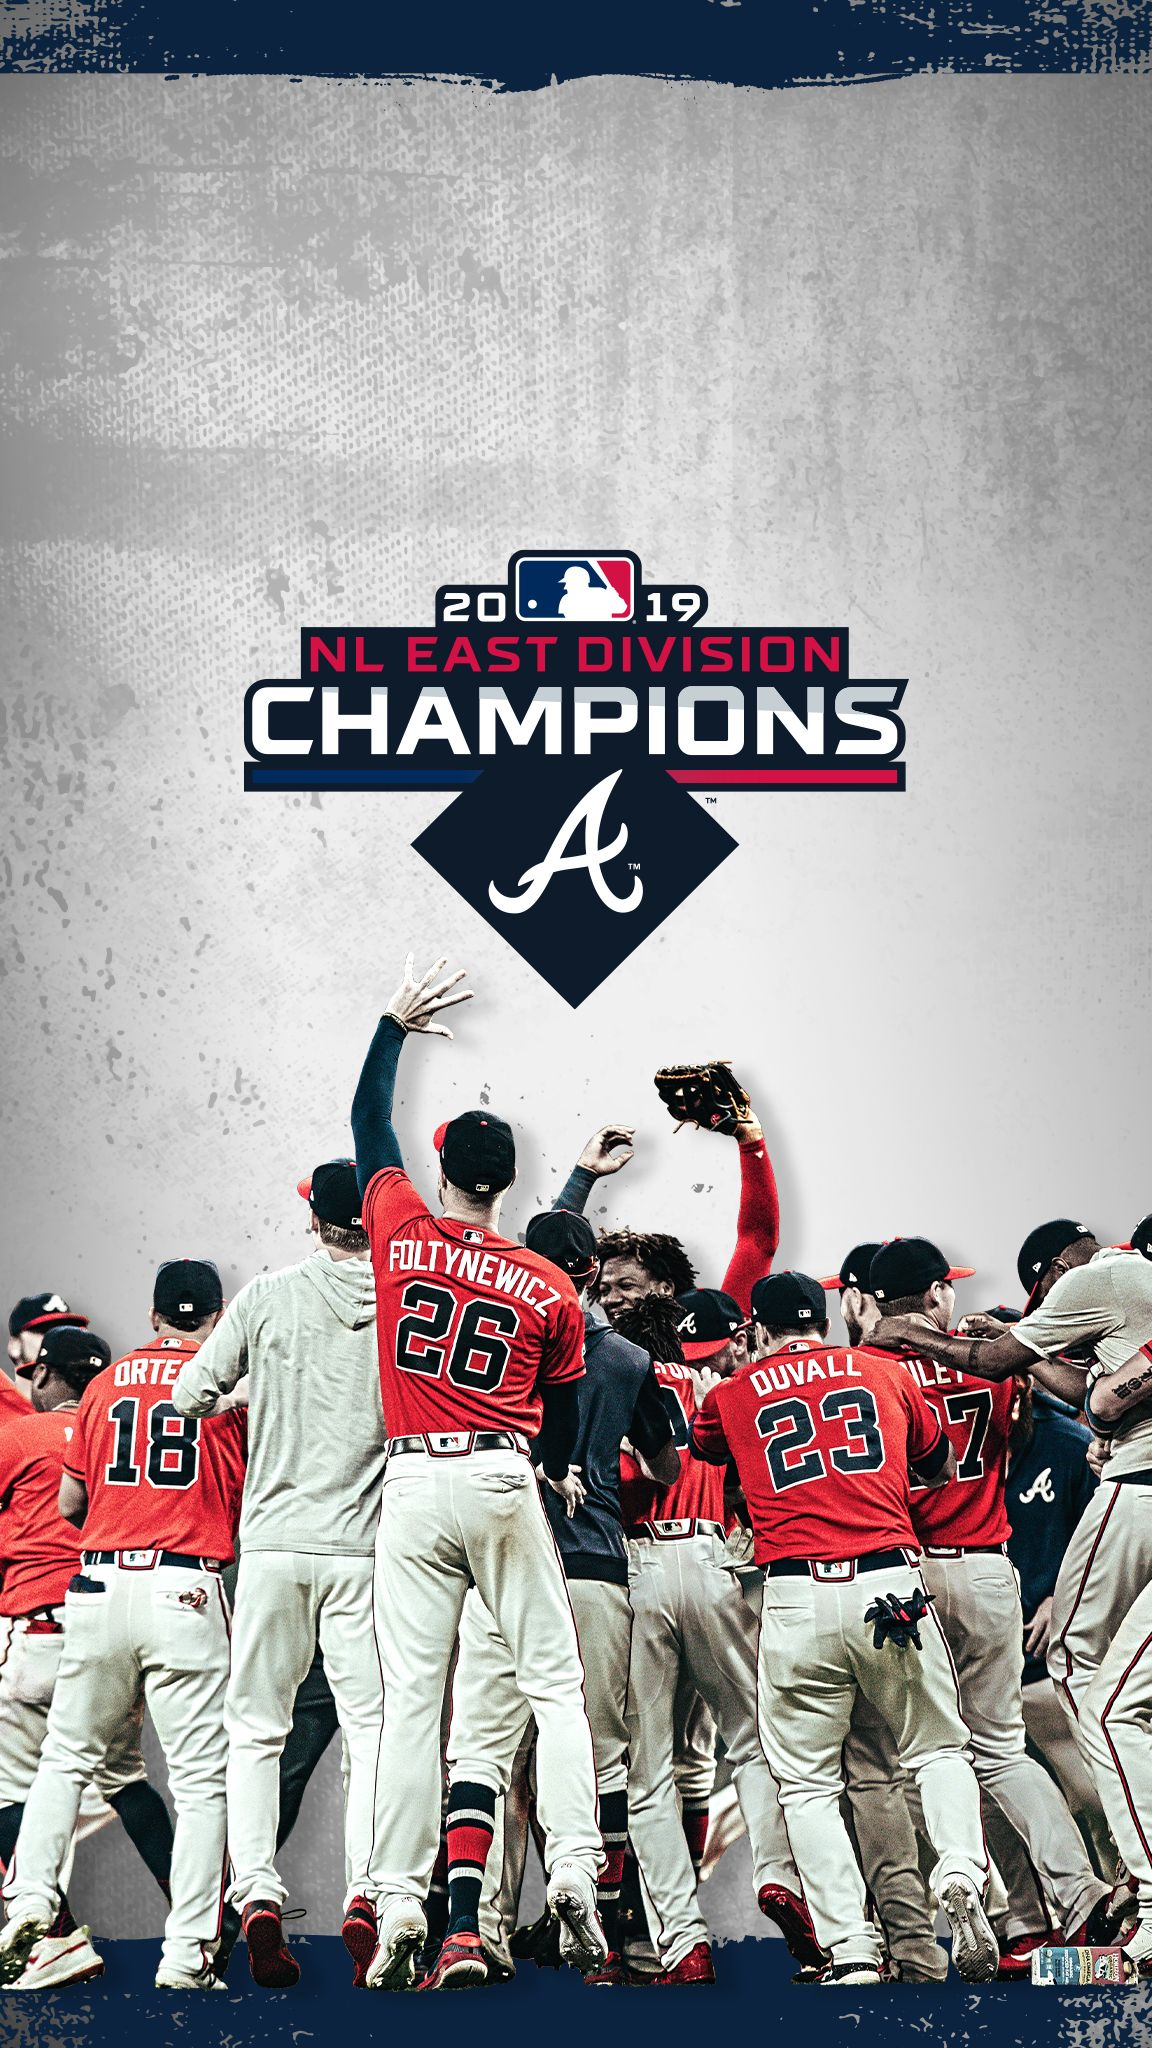 Atlanta Braves Iphone Wallpaper In 2020 Atlanta Braves Baseball Atlanta Braves Iphone Wallpaper Atlanta Braves